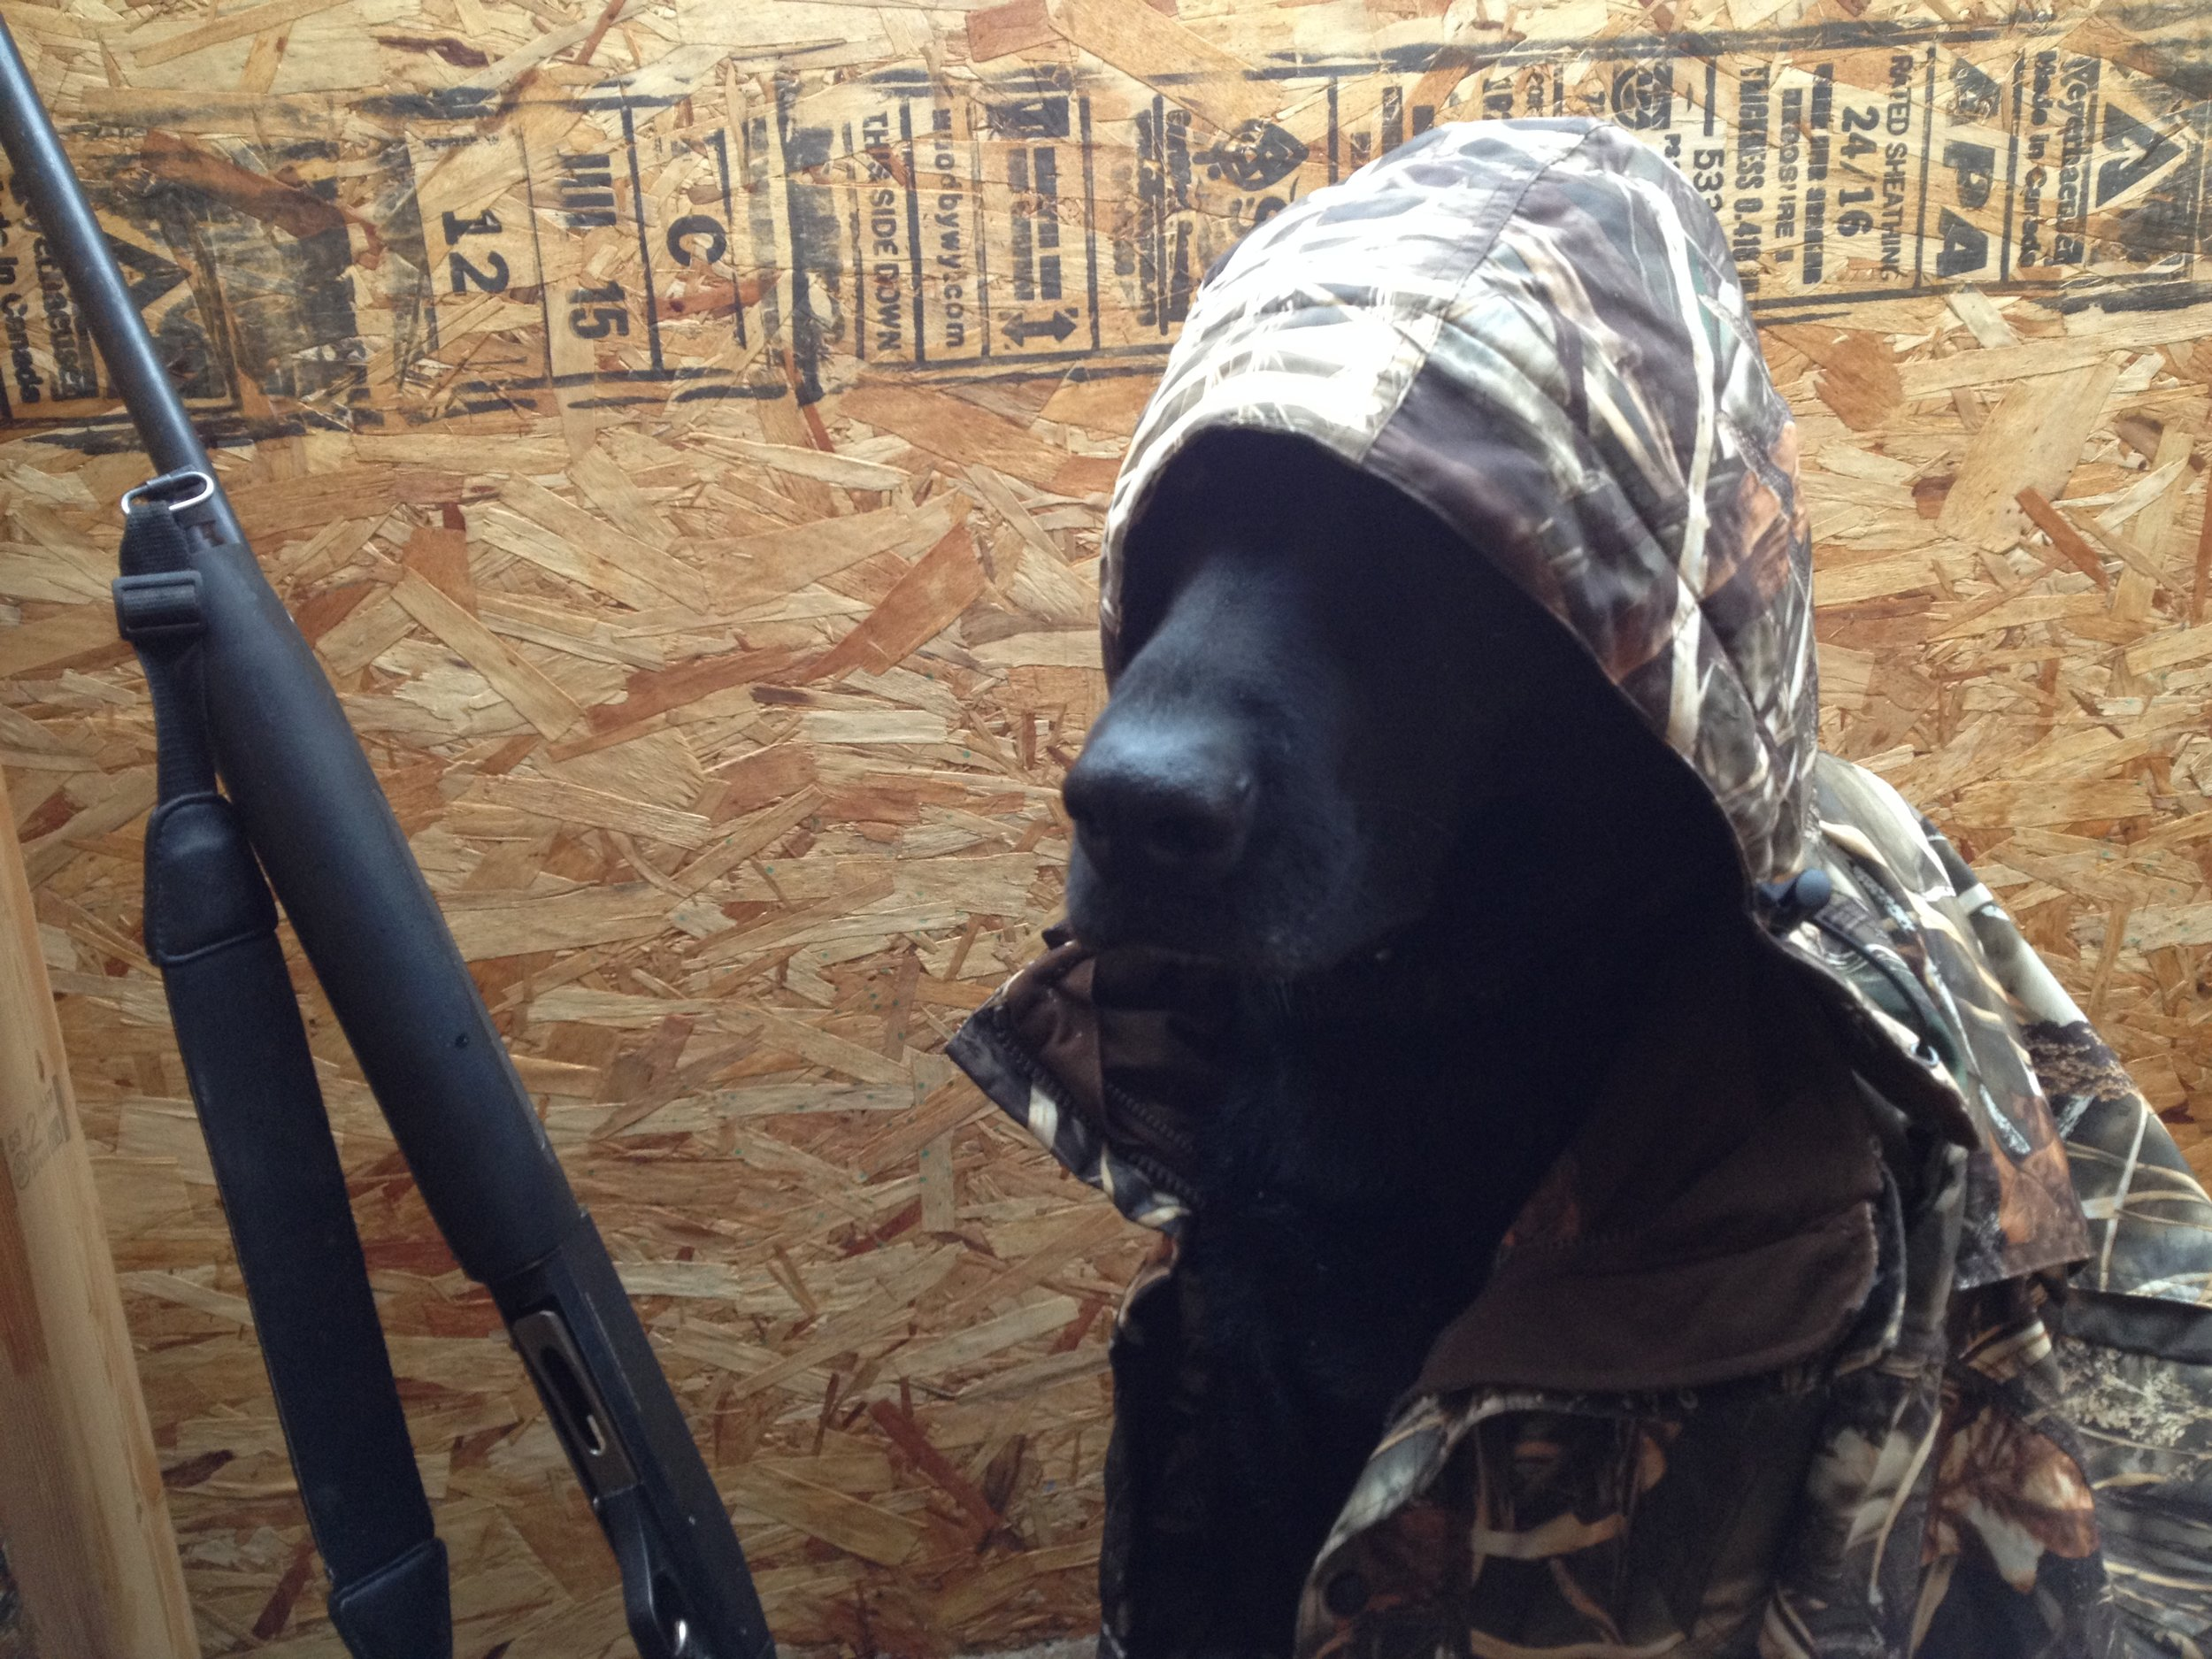 While stylish, there are no laws regarding attire for hunting dogs while in the field.